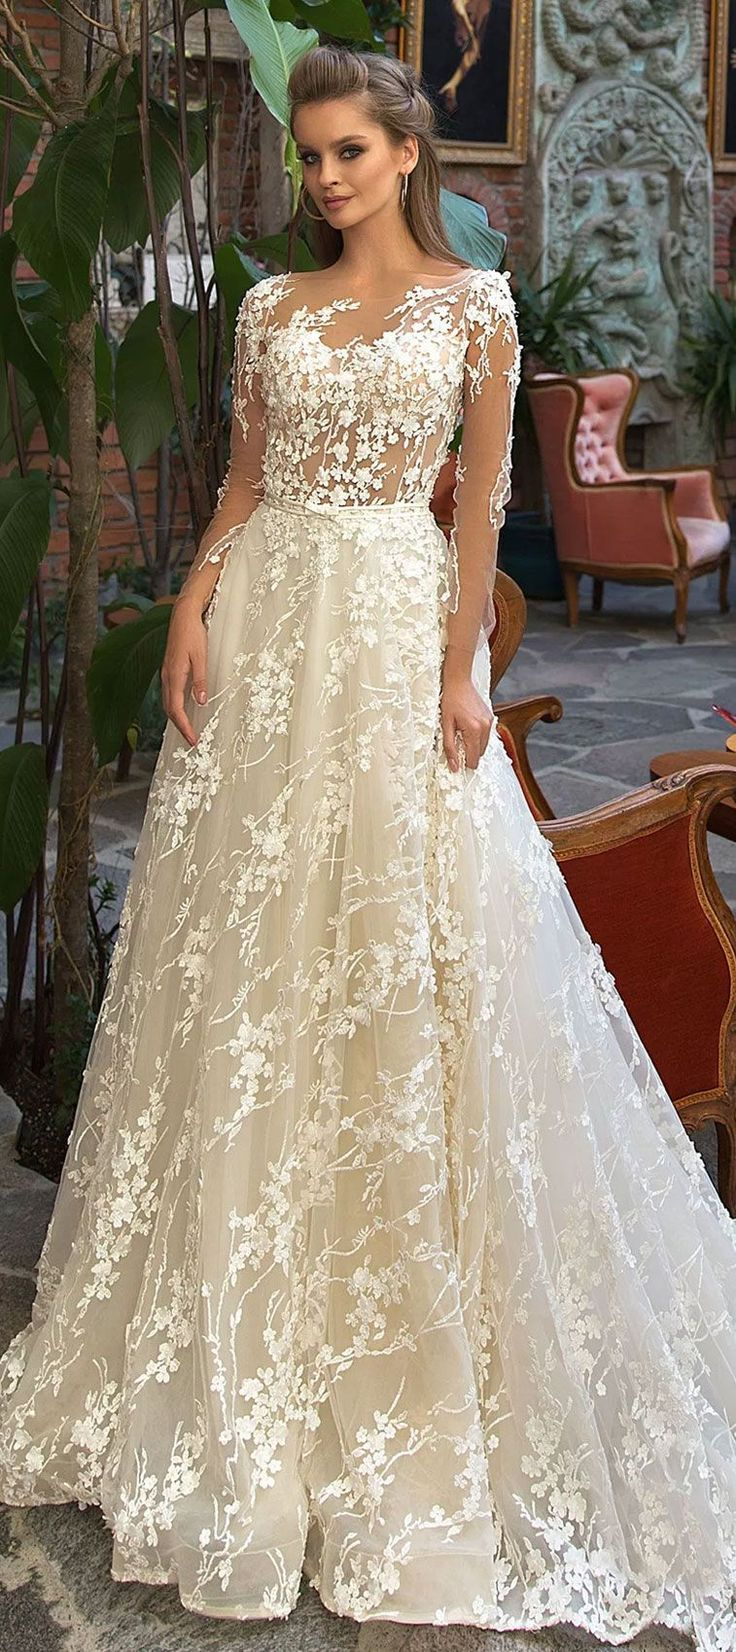 276 Best Trouw Jurken Images On Pinterest Bridal Collection Paket Firia Eva Lendel Wedding Dresses Angelic Dreams